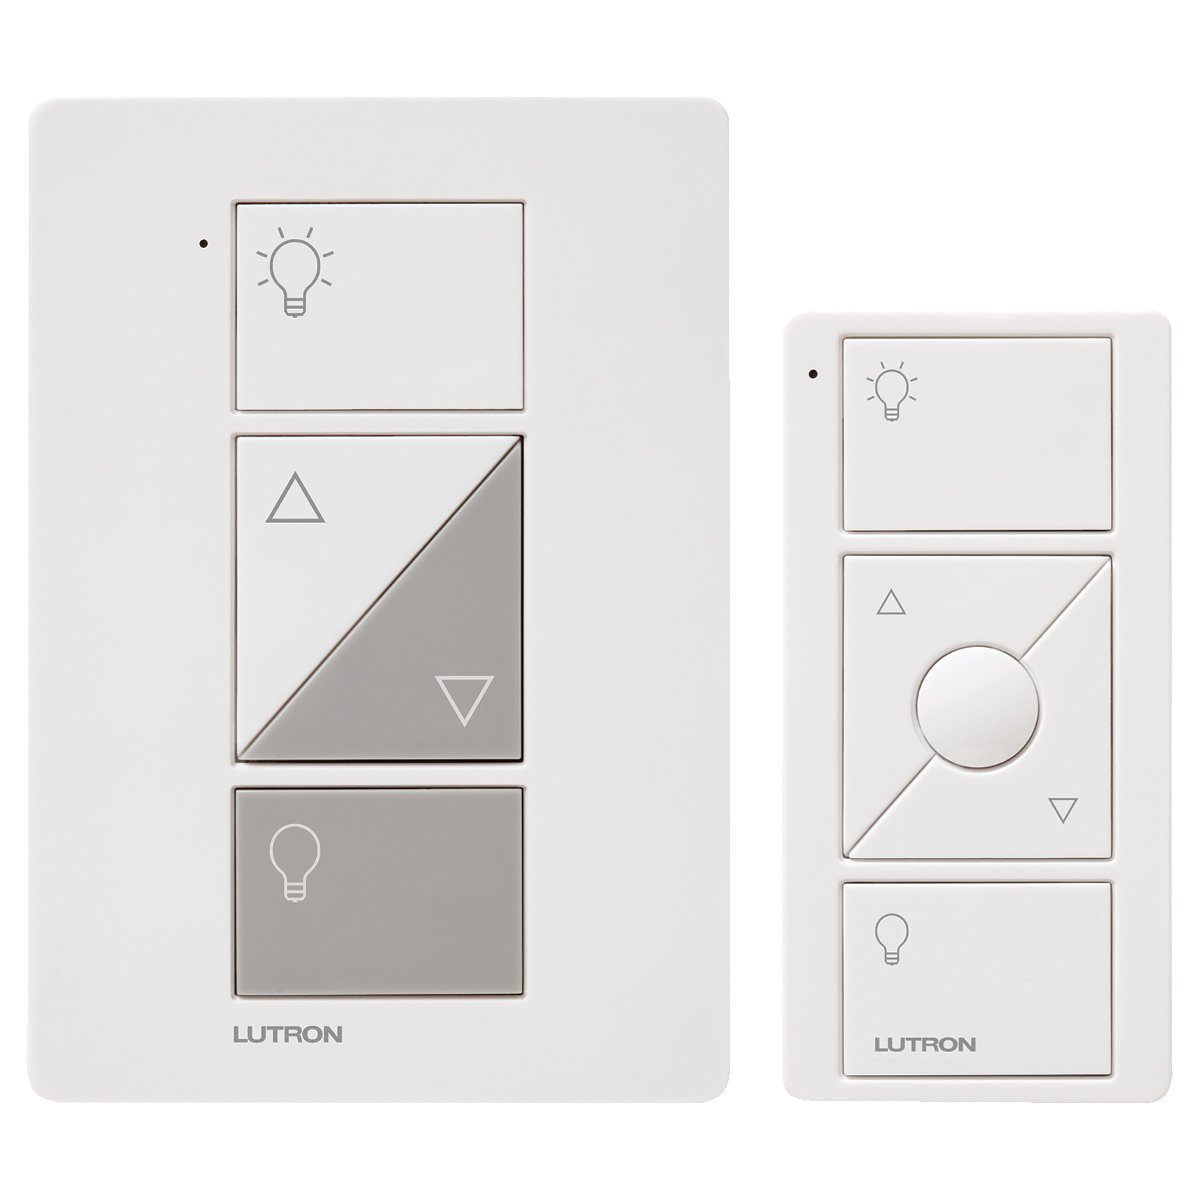 Best Rated In Wall Light Switches Helpful Customer Reviews 3way Touch Sensor Switch Control 110 220v Lamp Desk Bulb Dimmer Lutron Caseta Wireless Smart Lighting And Remote Kit P Pkg1p Wh